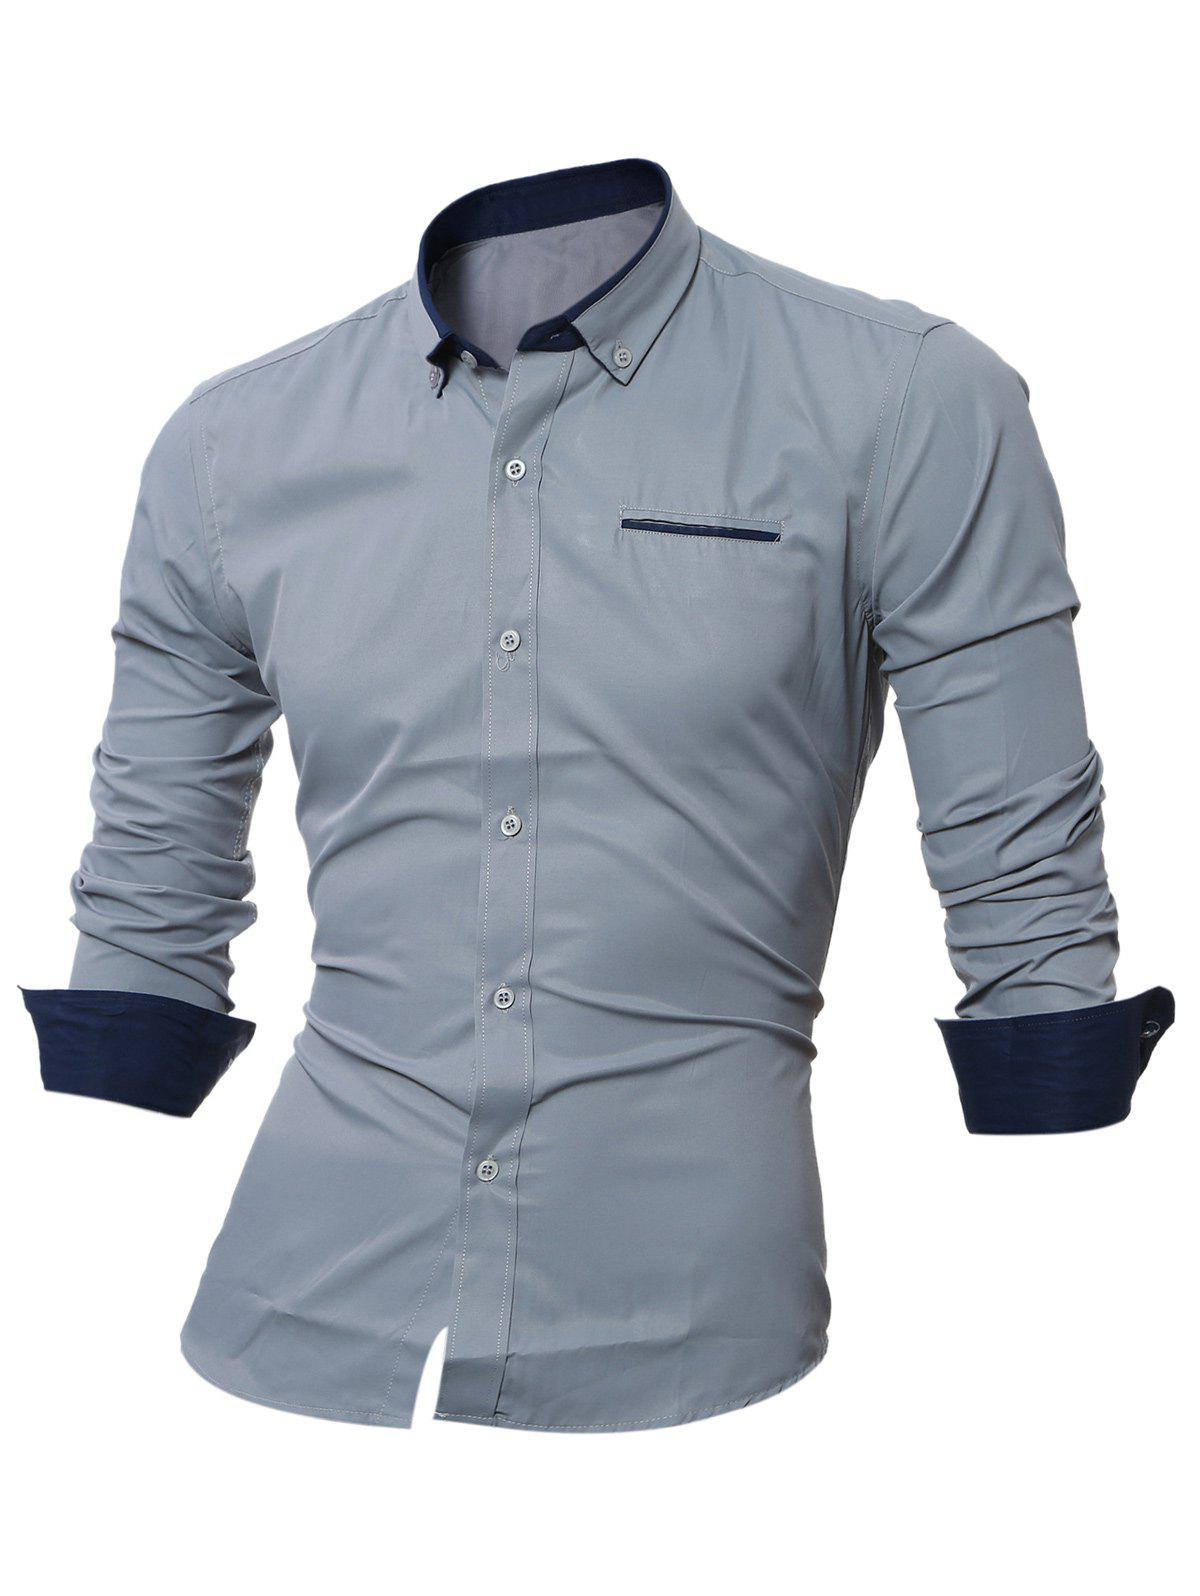 Long Sleeve Contrast Pocket Button Down Shirt - GRAY 3XL